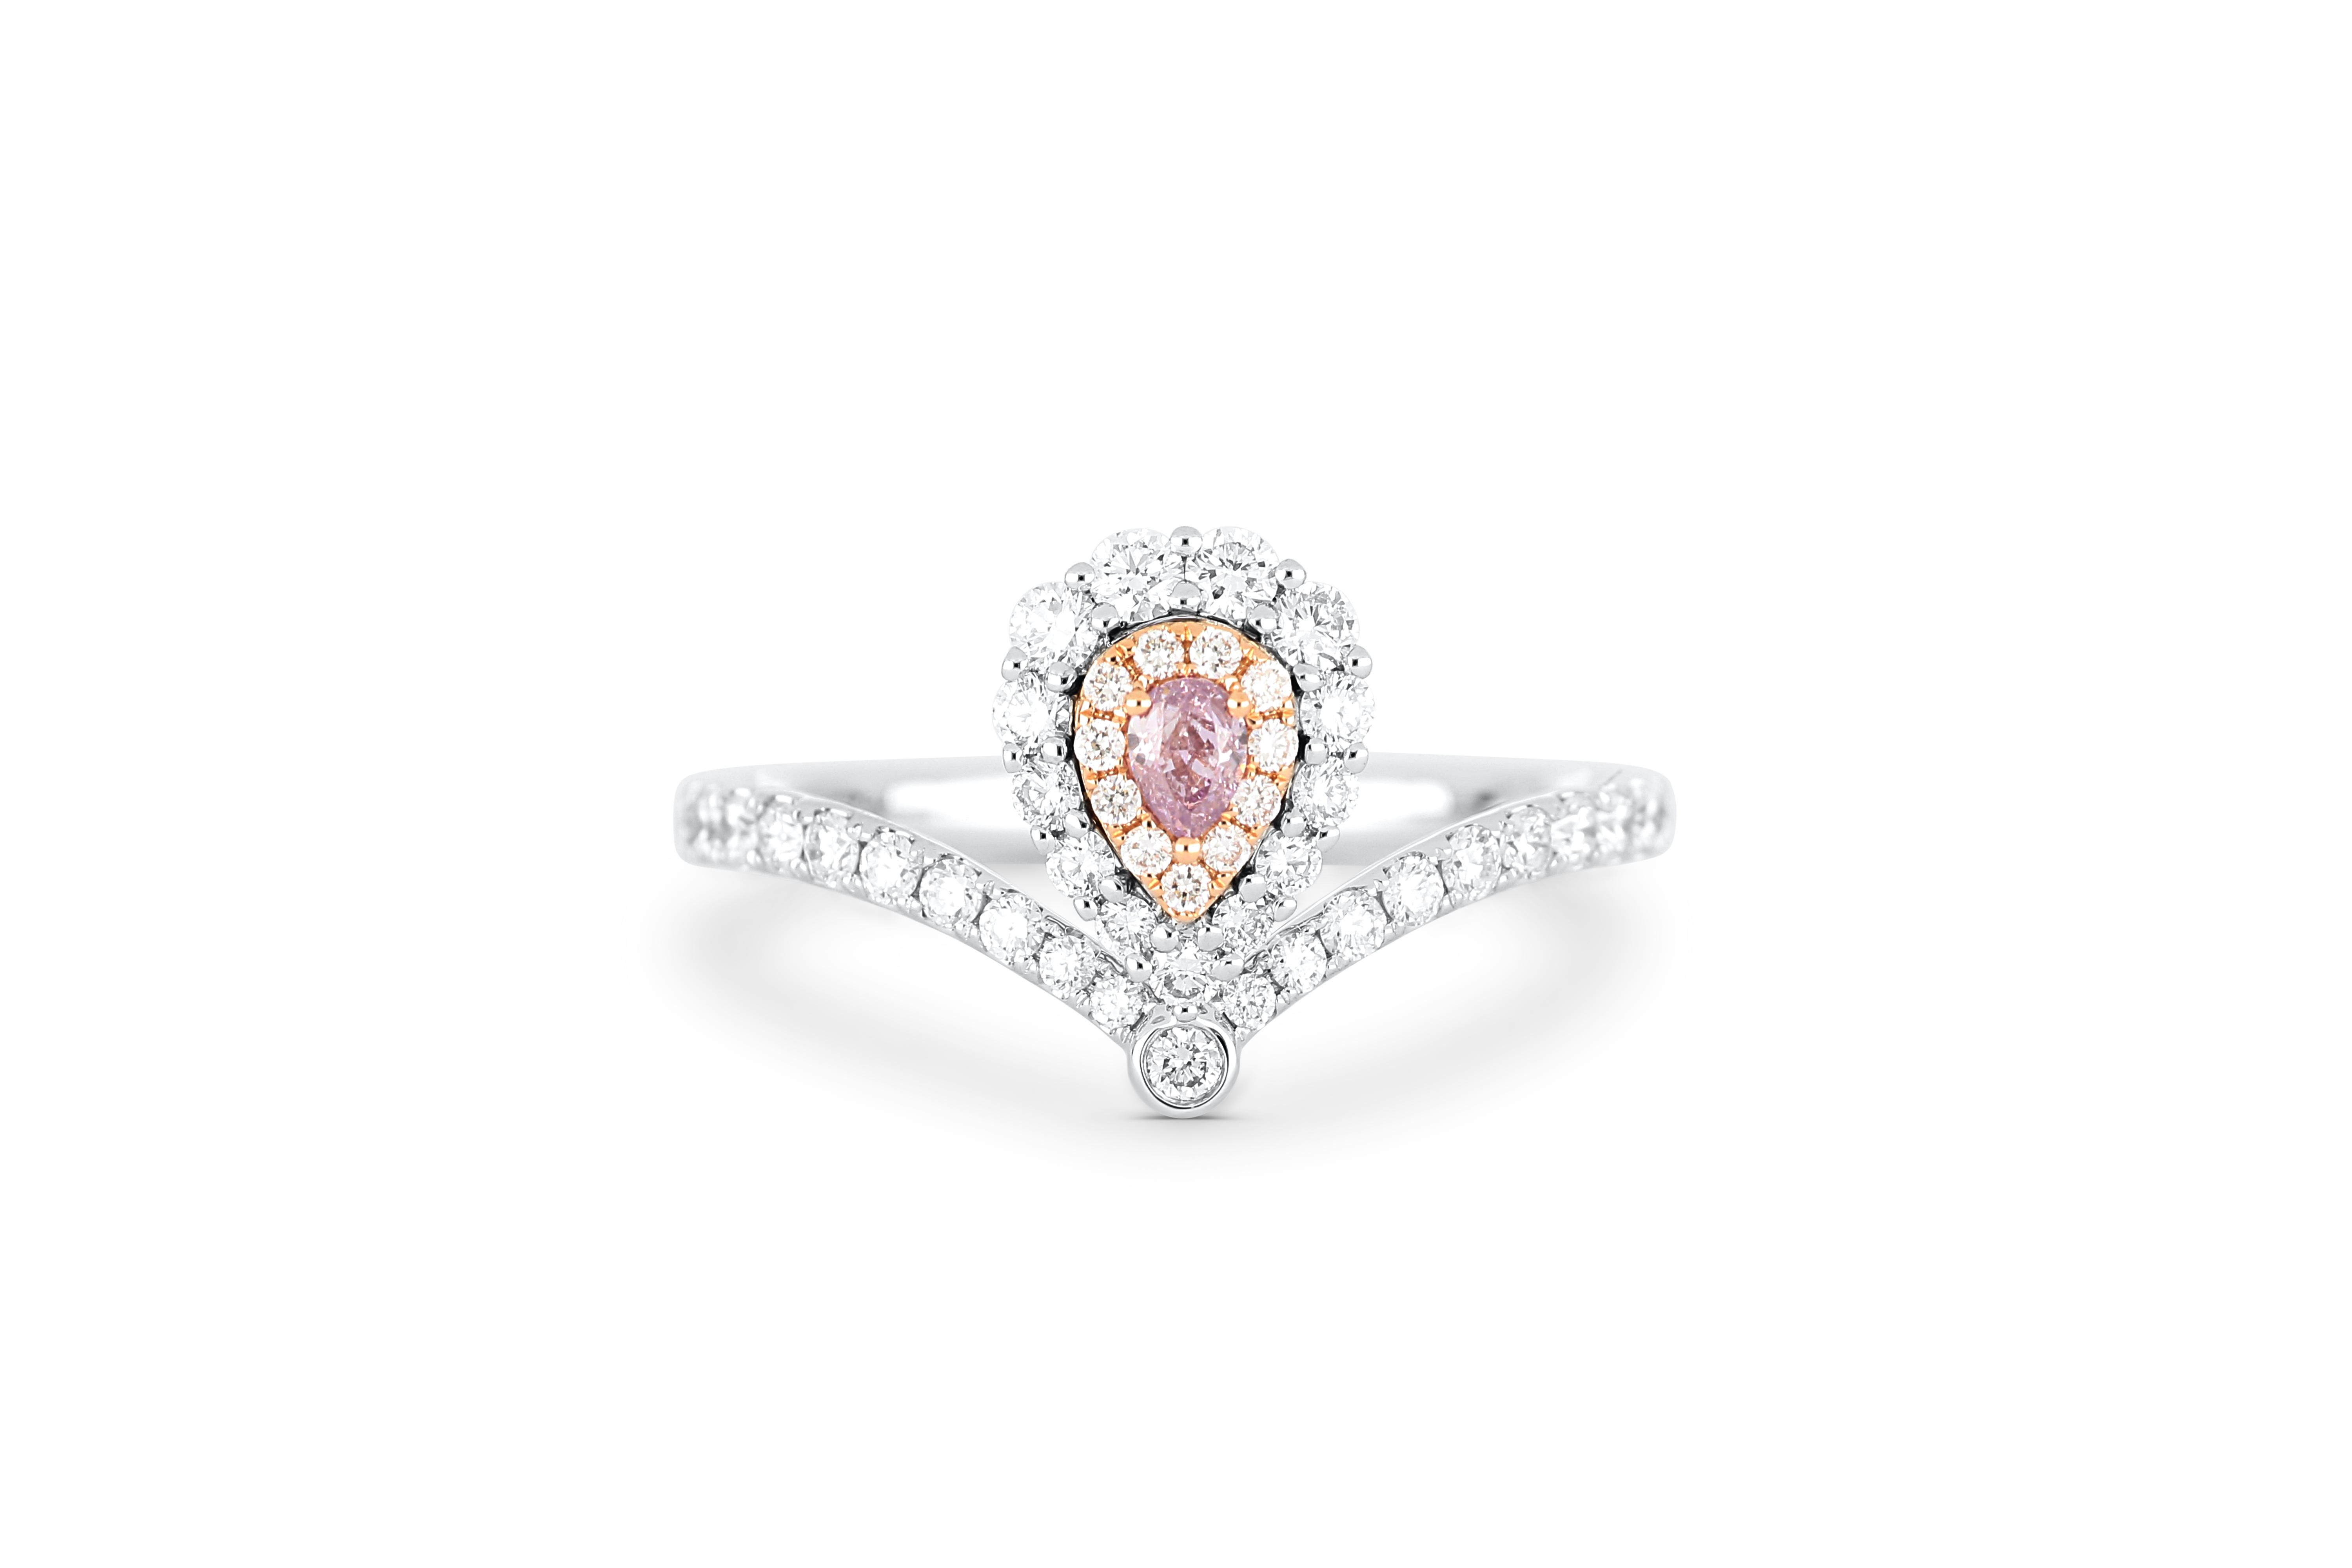 18k gold ring set with a centre FIPP 0.094ct pear cut natural diamond